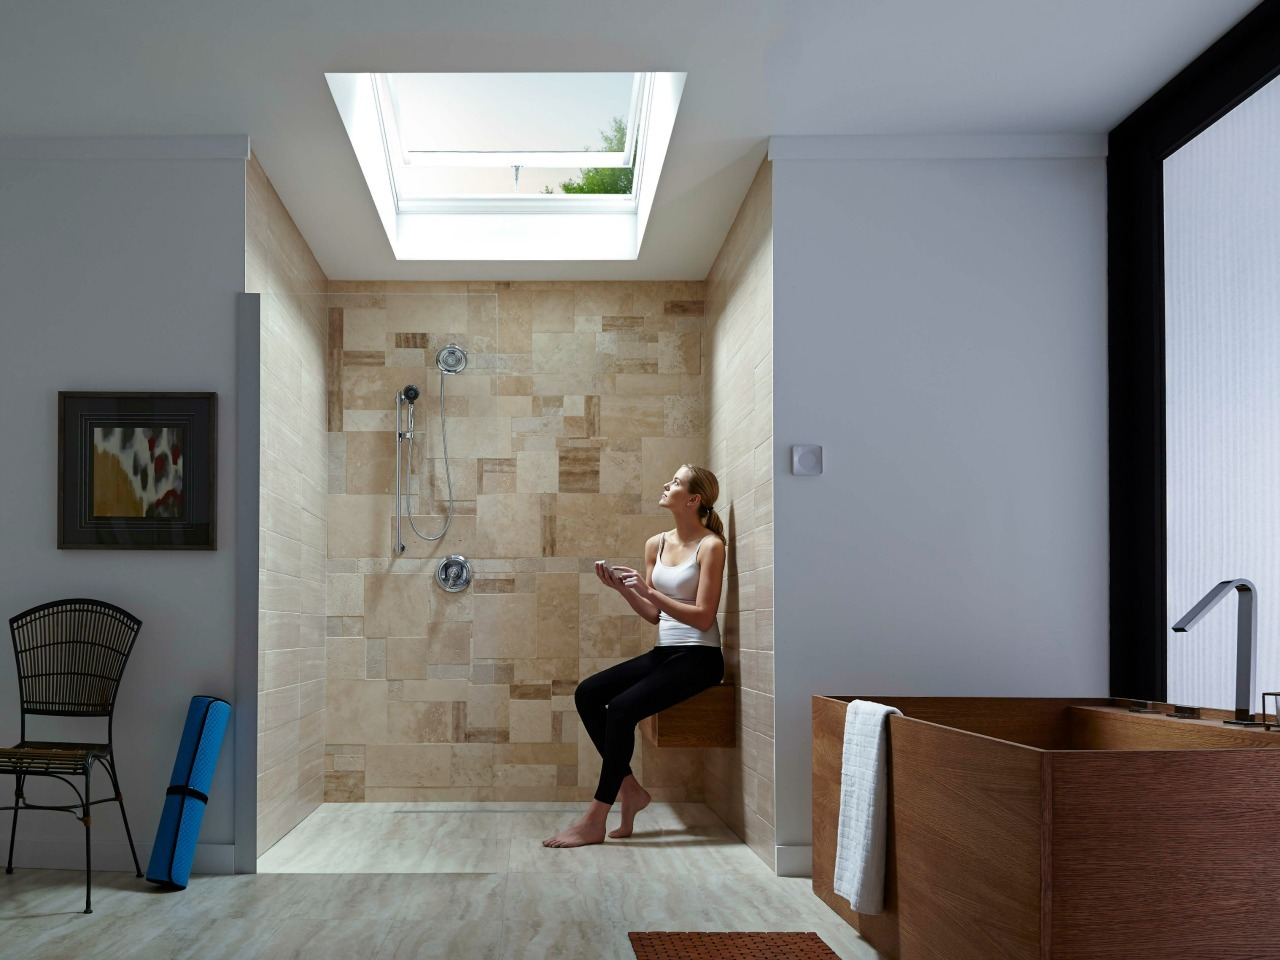 Bathroom Skylight Vent Bathroom Design Ideas